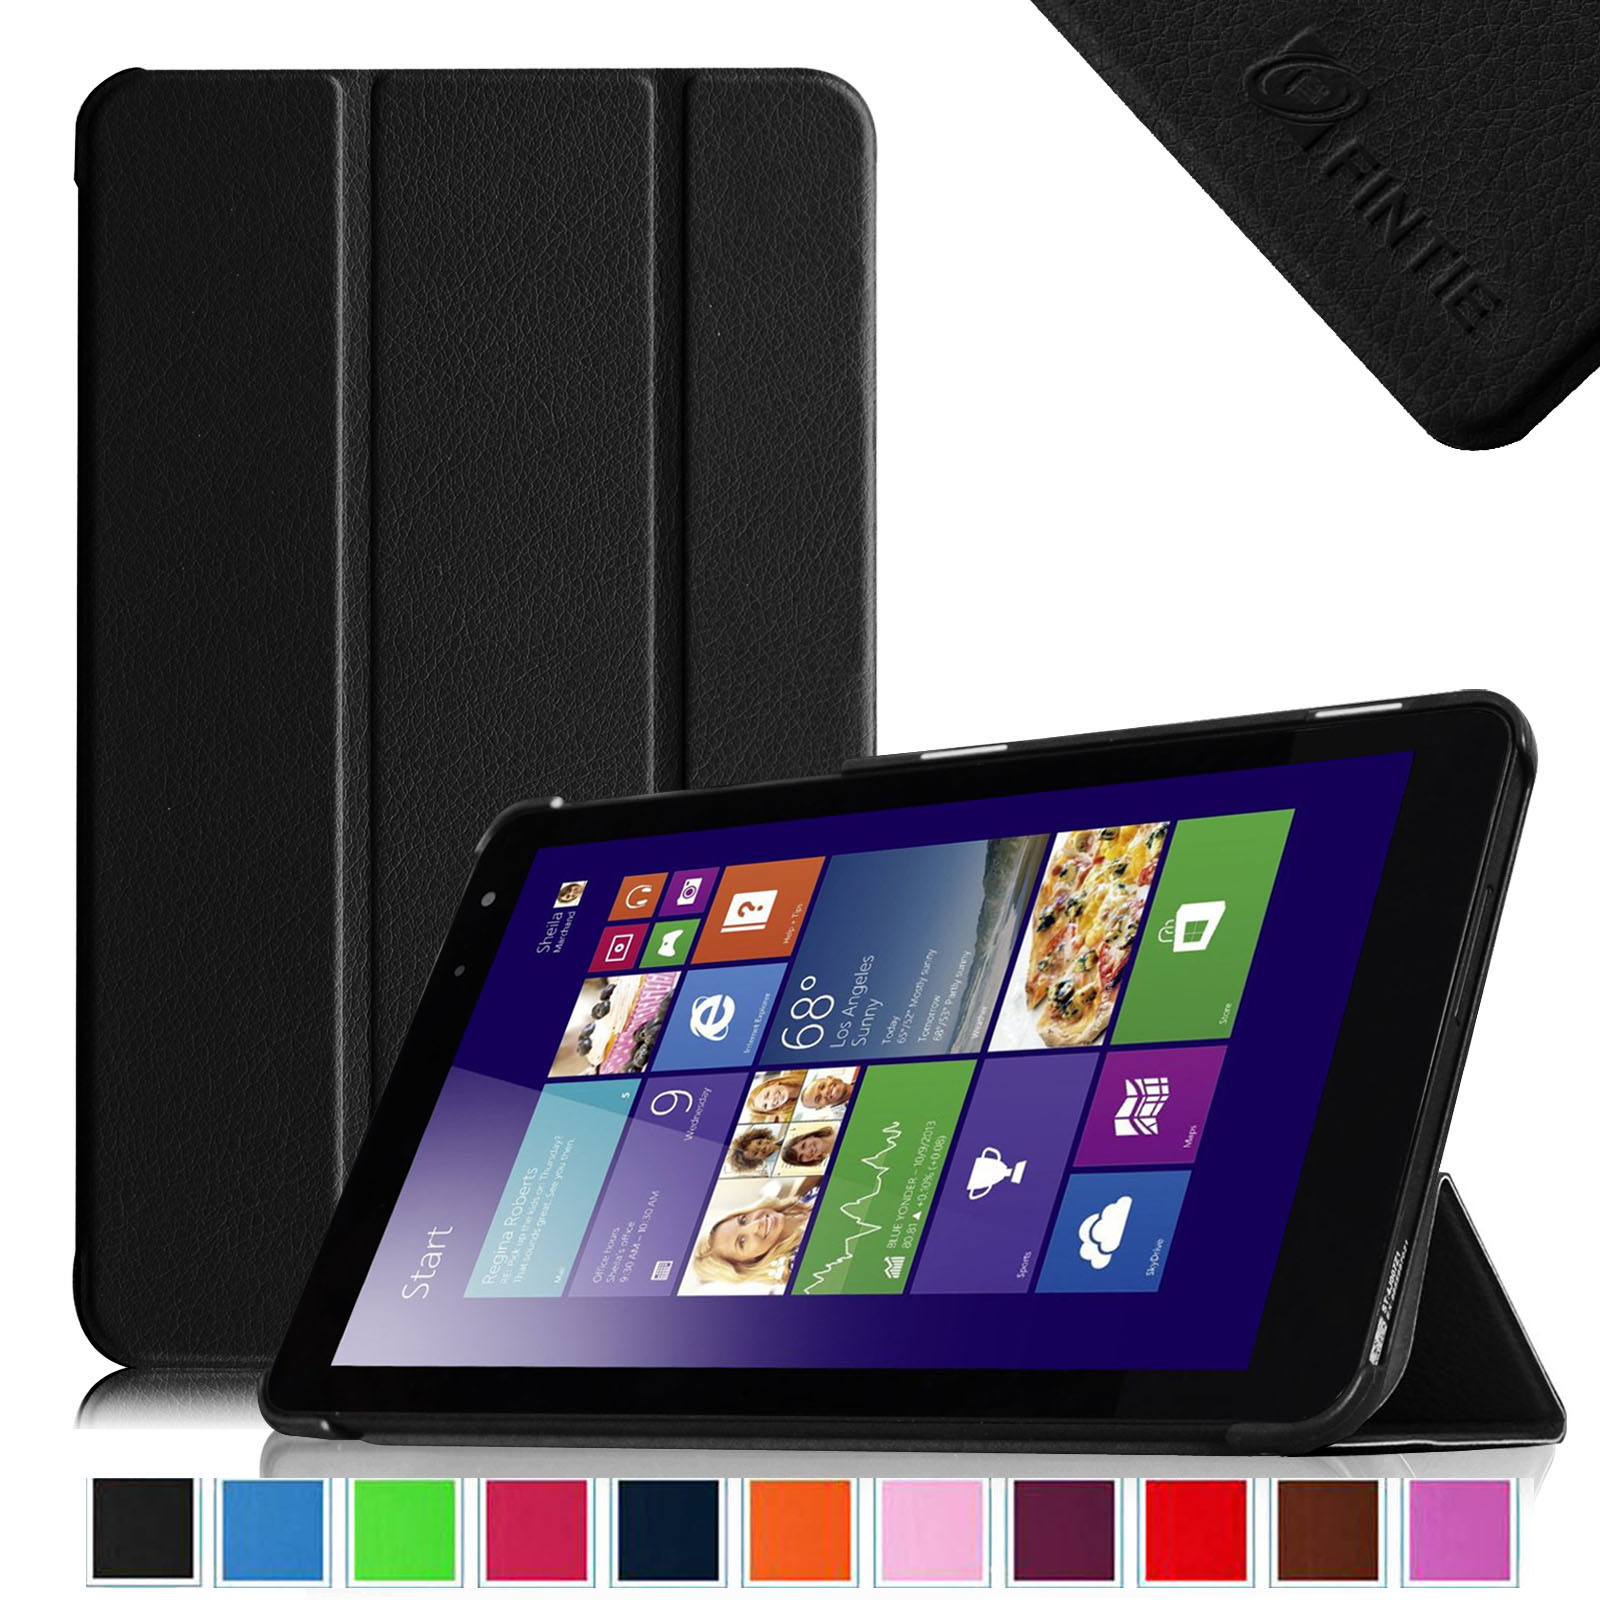 Fintie New Dell Venue 8 (2014 Version) / Dell Venue 8 Pro (Windows 8.1) 8-Inch Tablet Slim Shell Case Cover, Black